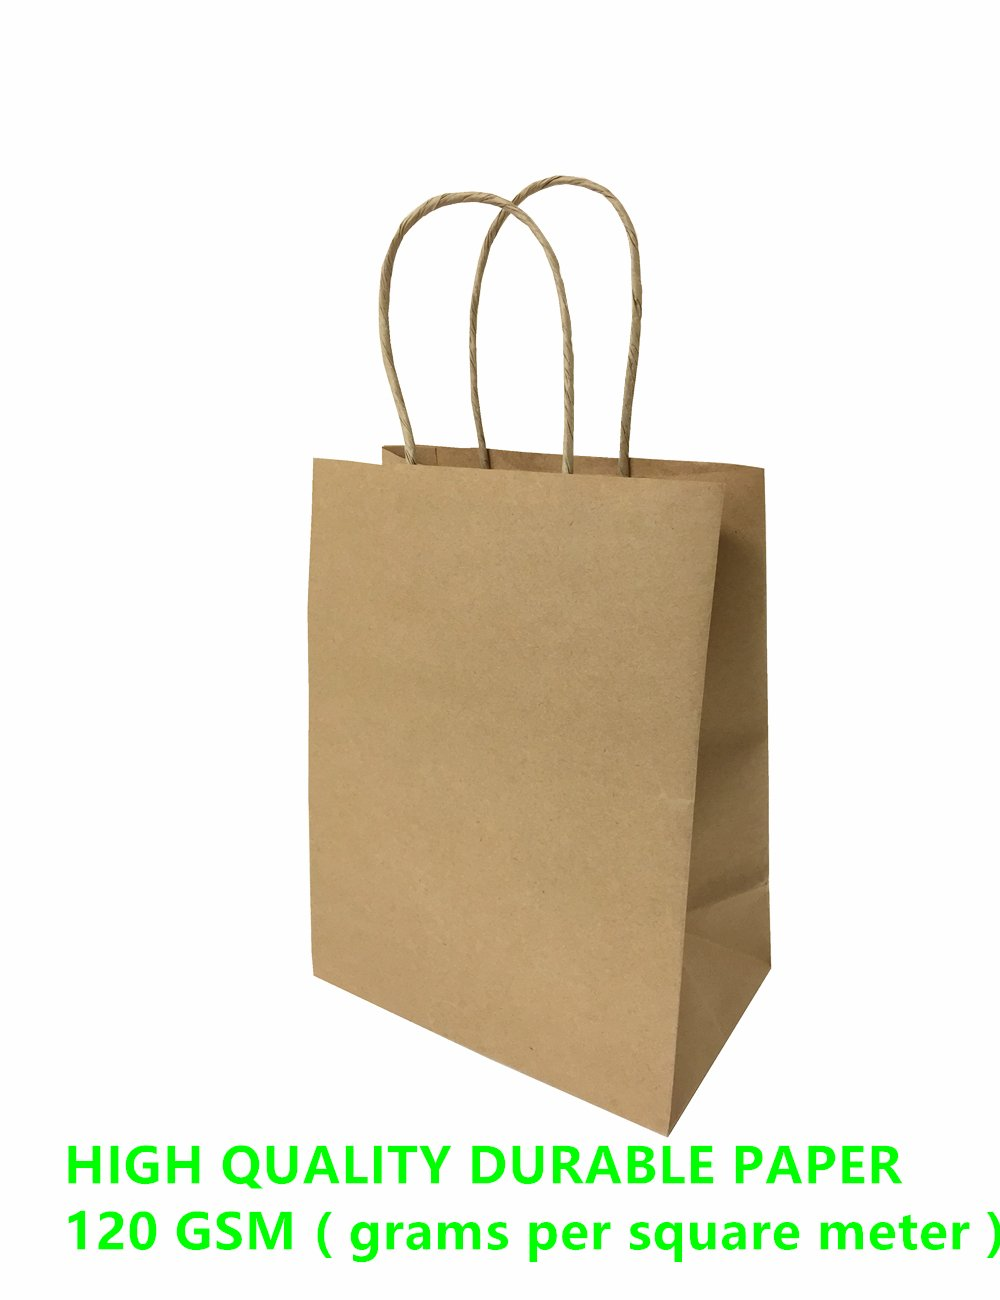 Mistmo 5.25''X3.25''X8''-200 Pc Premium Paper Bag (120GSM), Gift, Shopping, Merchandise, Grocery, Recycle Kraft Handle Bags, Color: BROWN